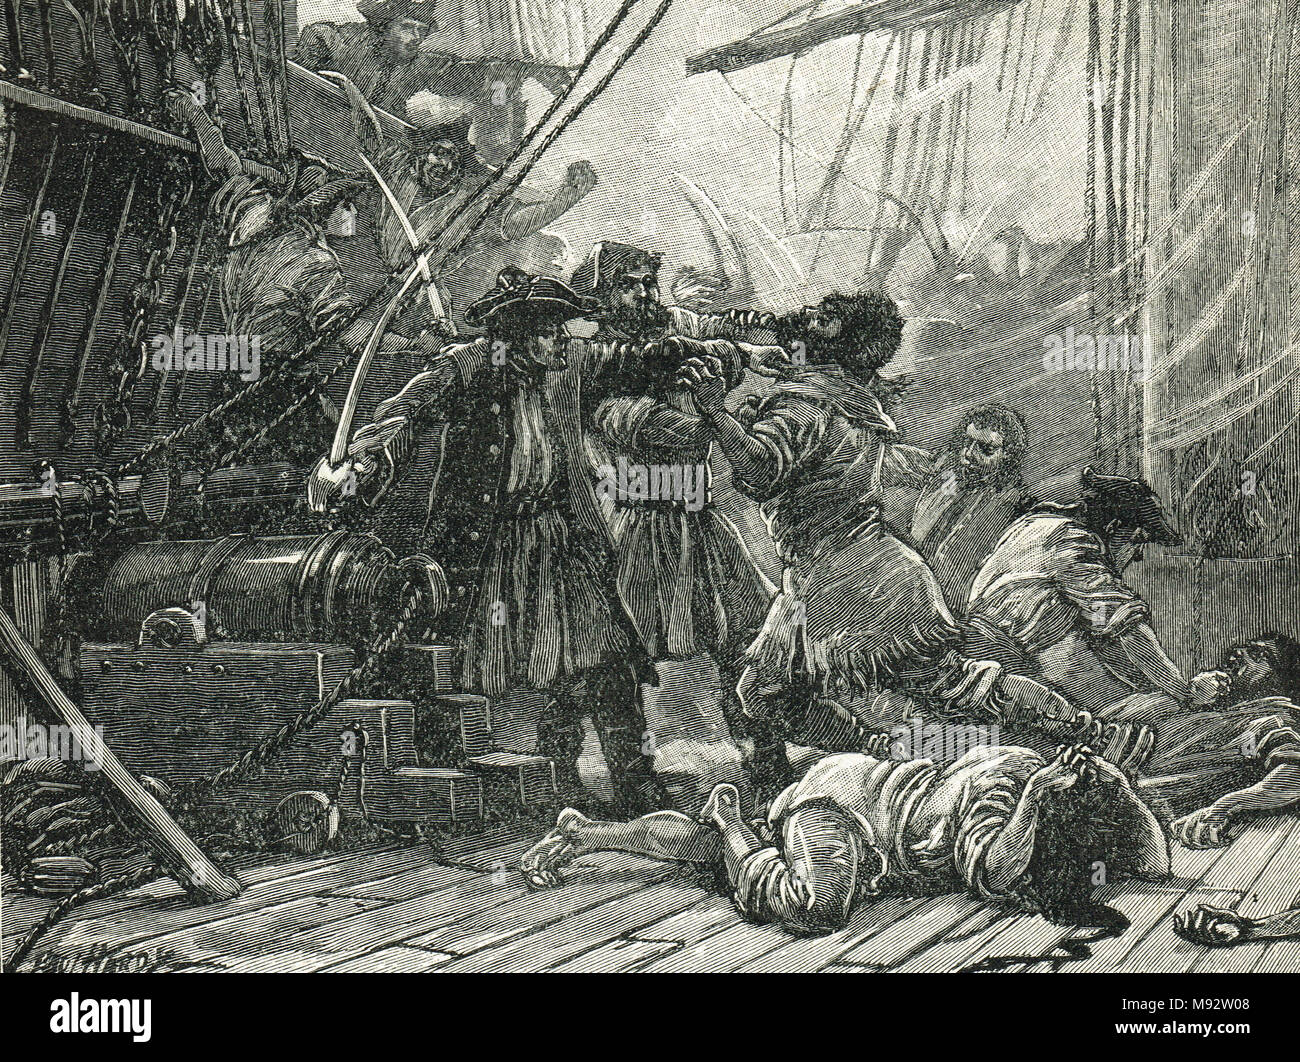 Revenue Cutters capturing an American smuggling vessel 1765